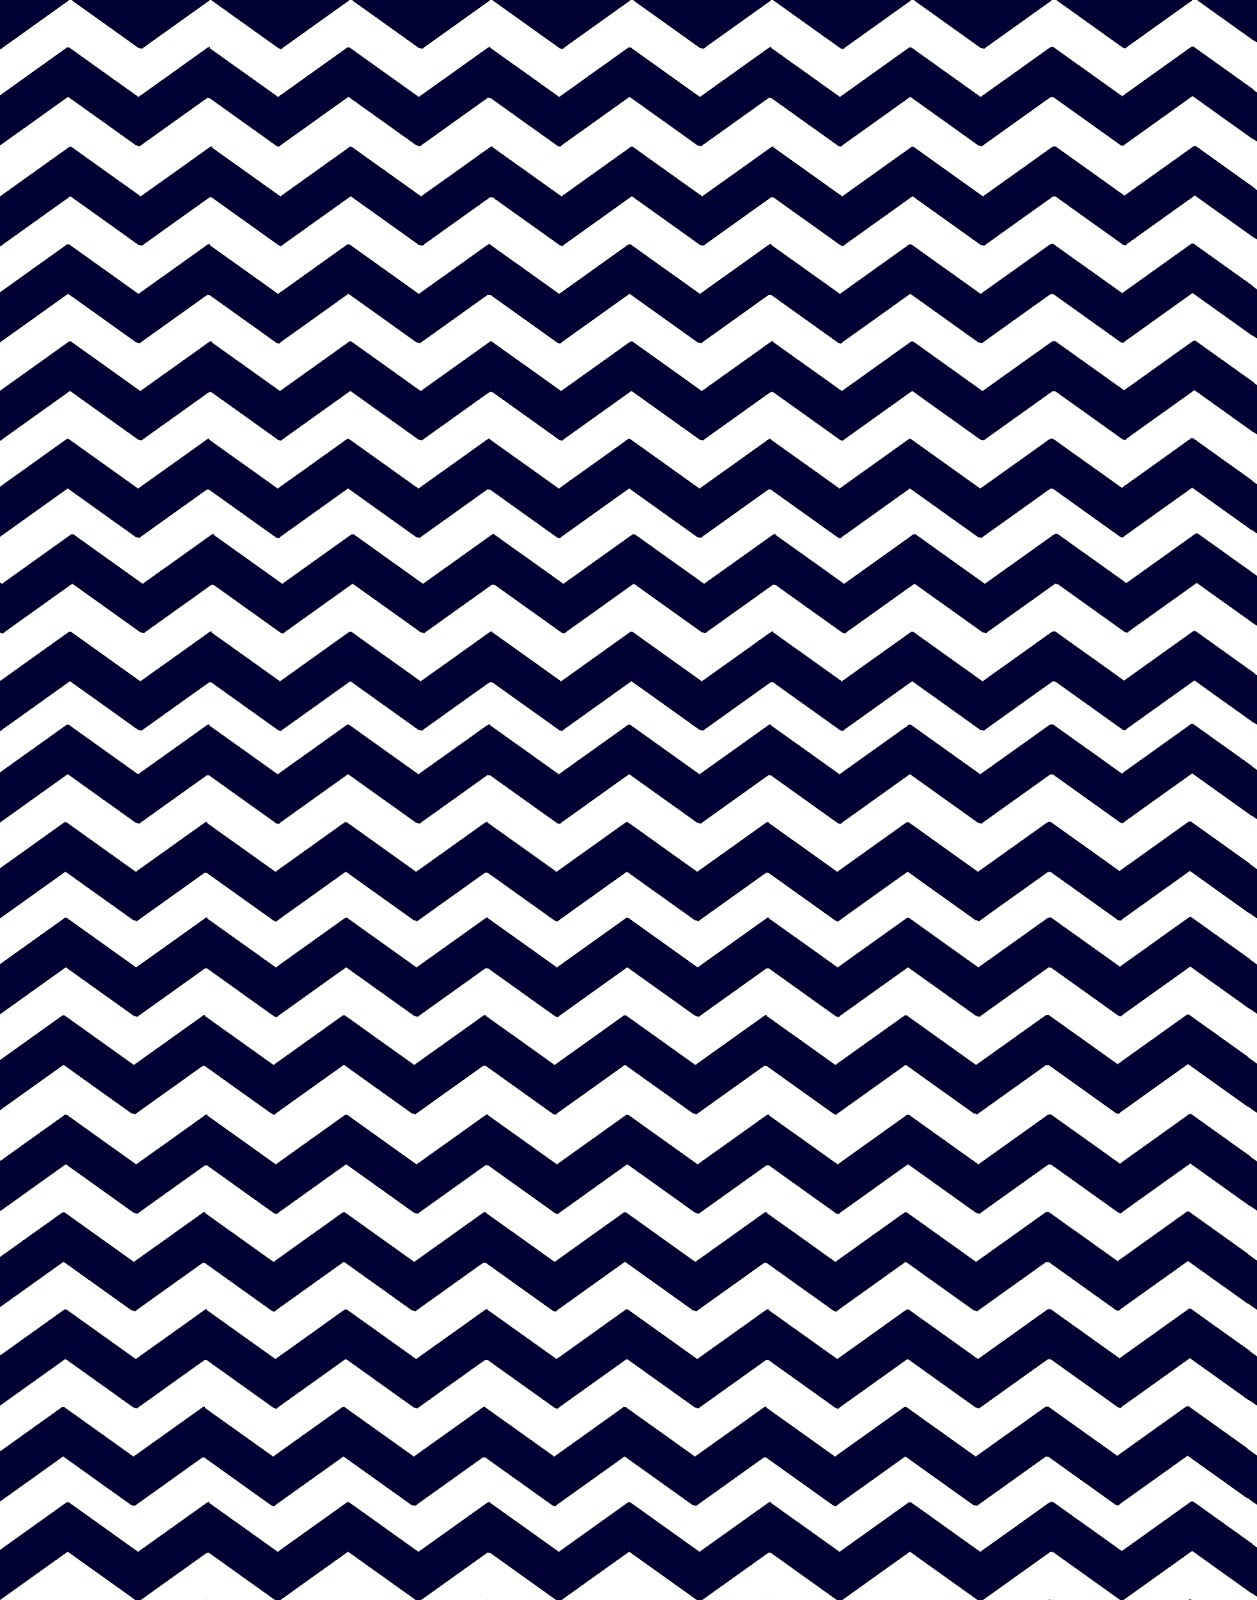 Free Download Doodlecraft 16 New Colors Chevron Background Patterns 1257x1600 For Your Desktop Mobile Tablet Explore 50 Blue And White Chevron Wallpaper Yellow Chevron Wallpaper Gold And White Chevron